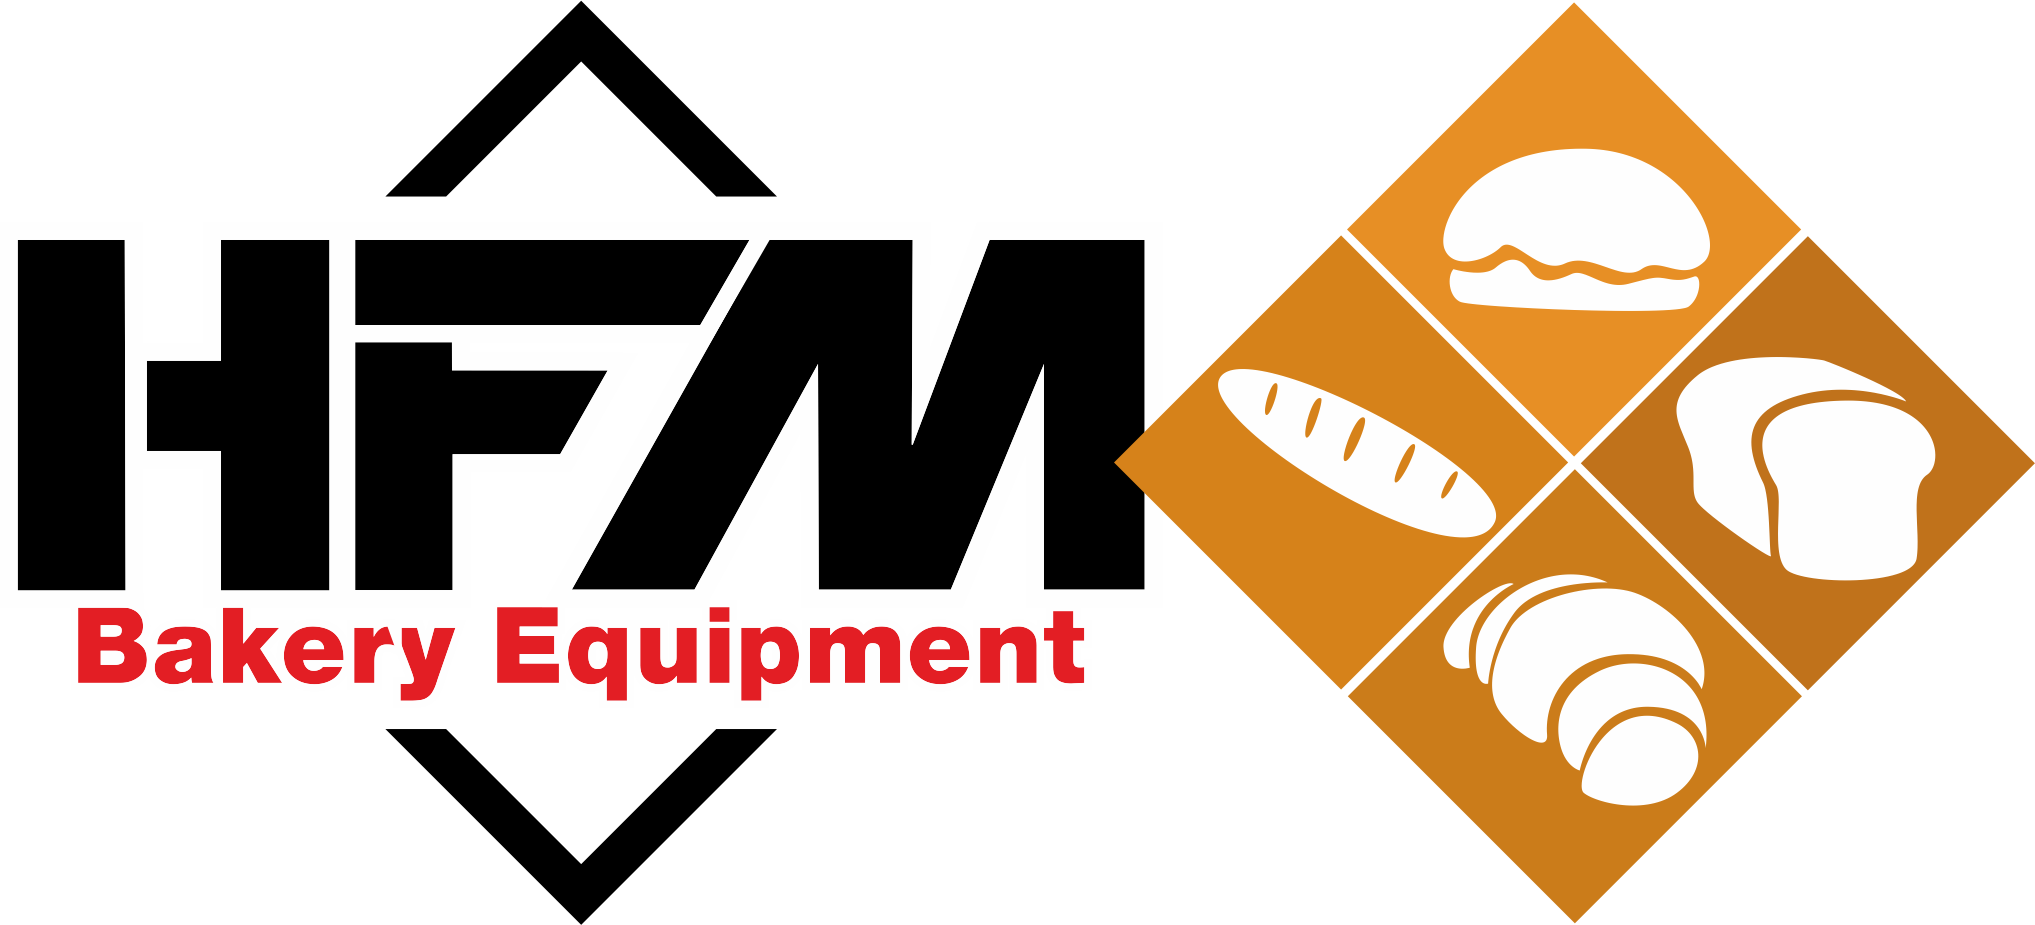 hfm-bakery-equipment.png Logo